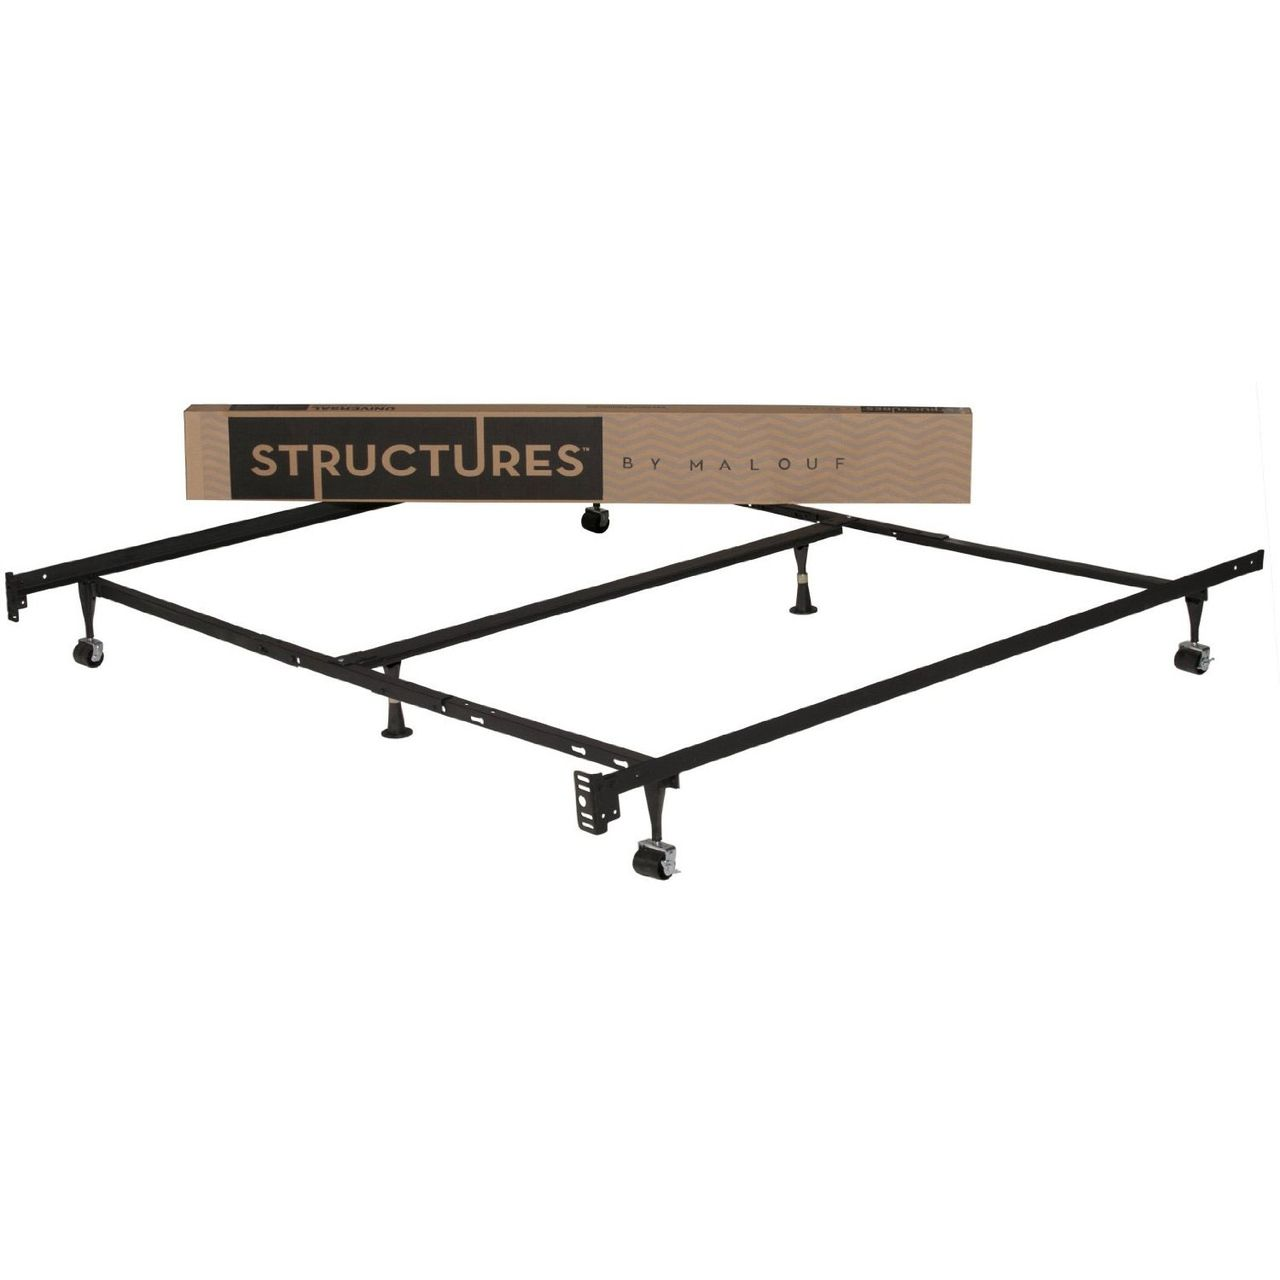 Queen Size Metal Bed Frame With Rug Rollers And Headboard